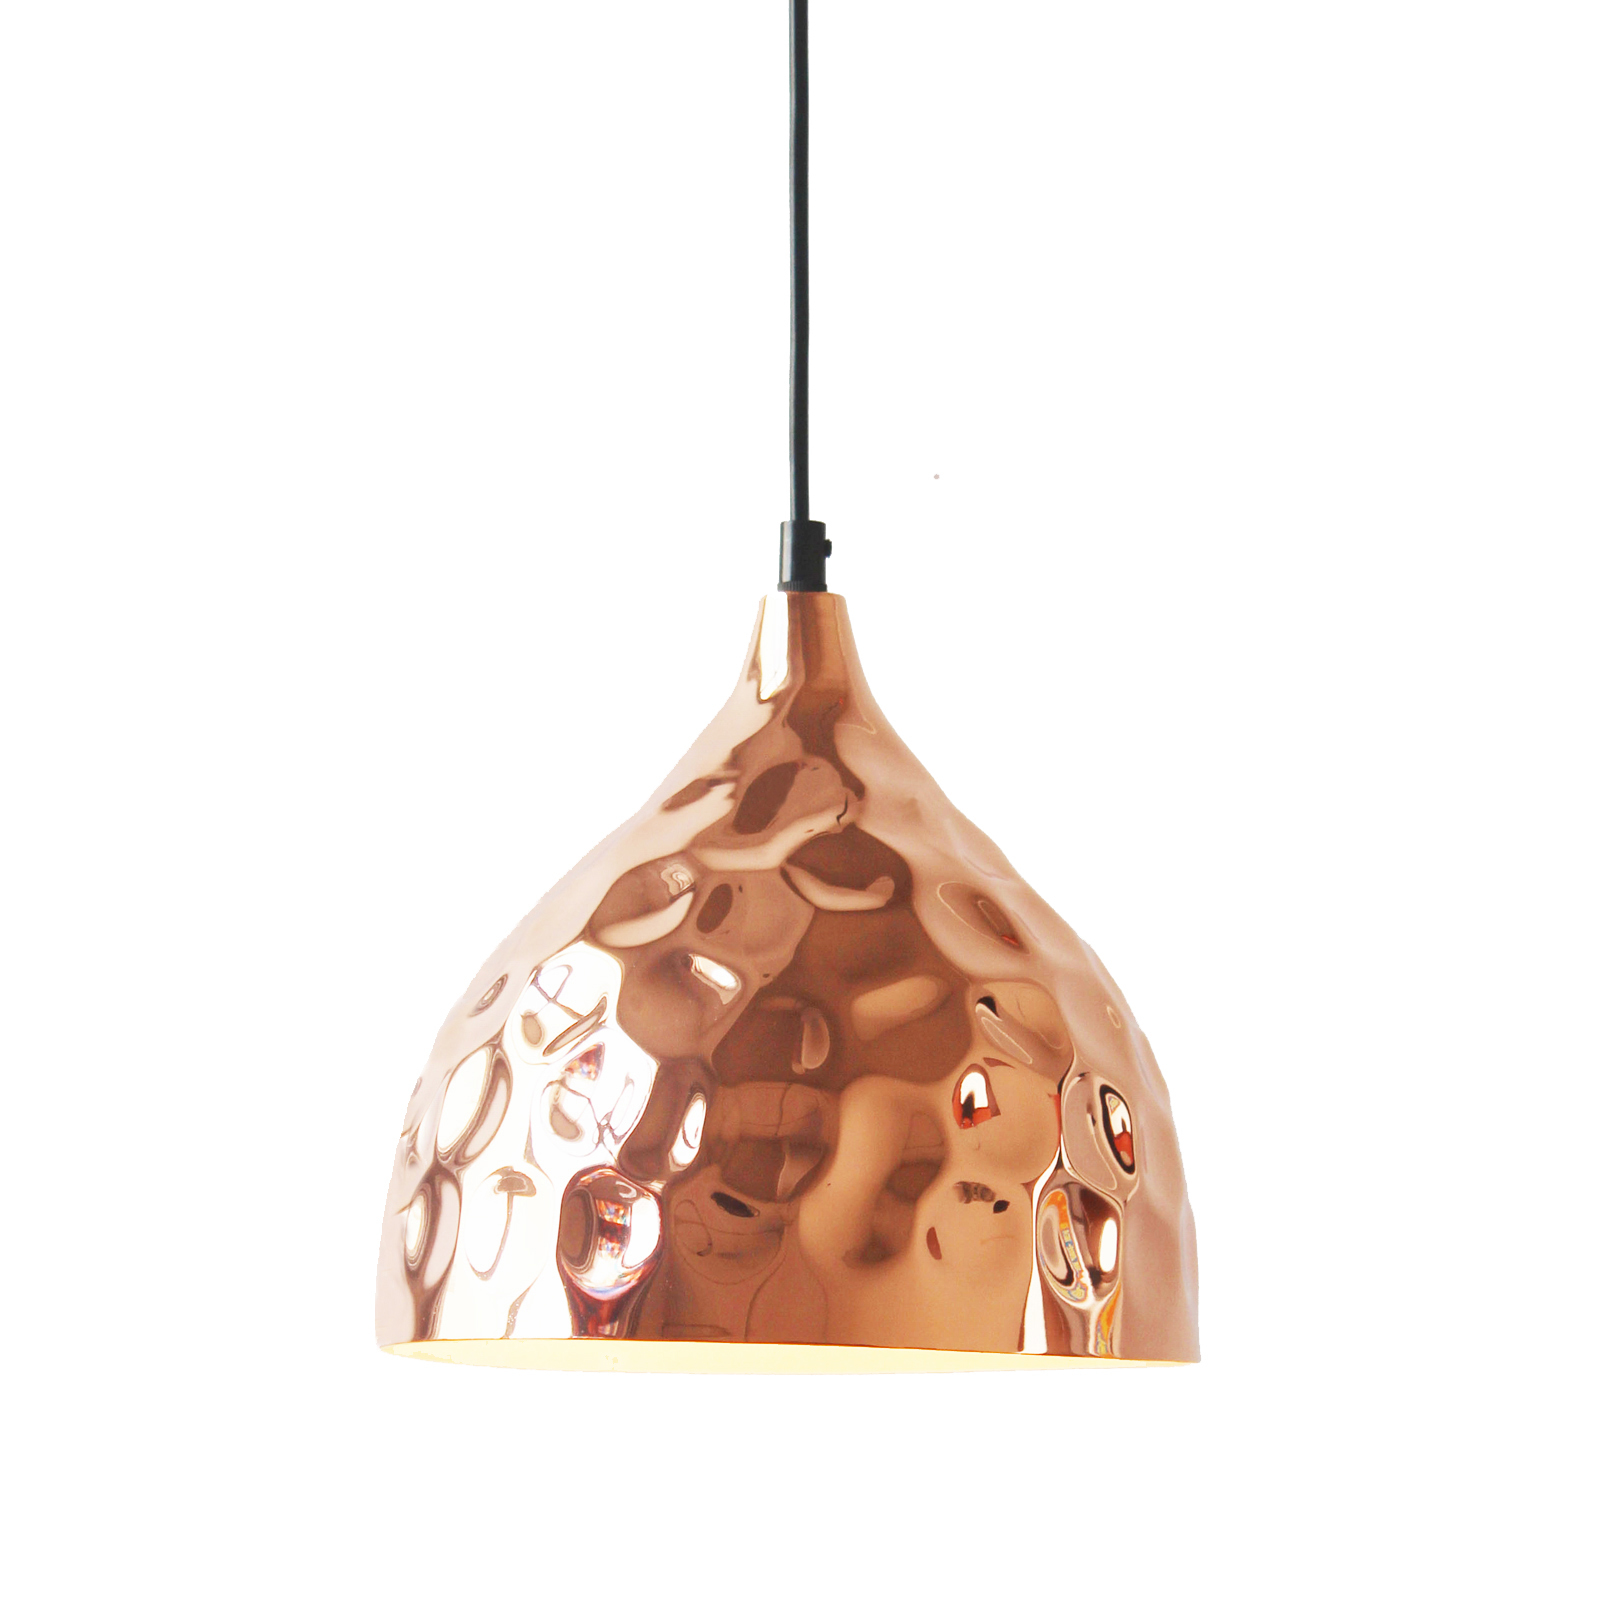 copper lighting fixture. SKU #IVOR1169 Nora Copper Hammered Pendant Light Is Also Sometimes Listed Under The Following Manufacturer Numbers: IVD291 Lighting Fixture L